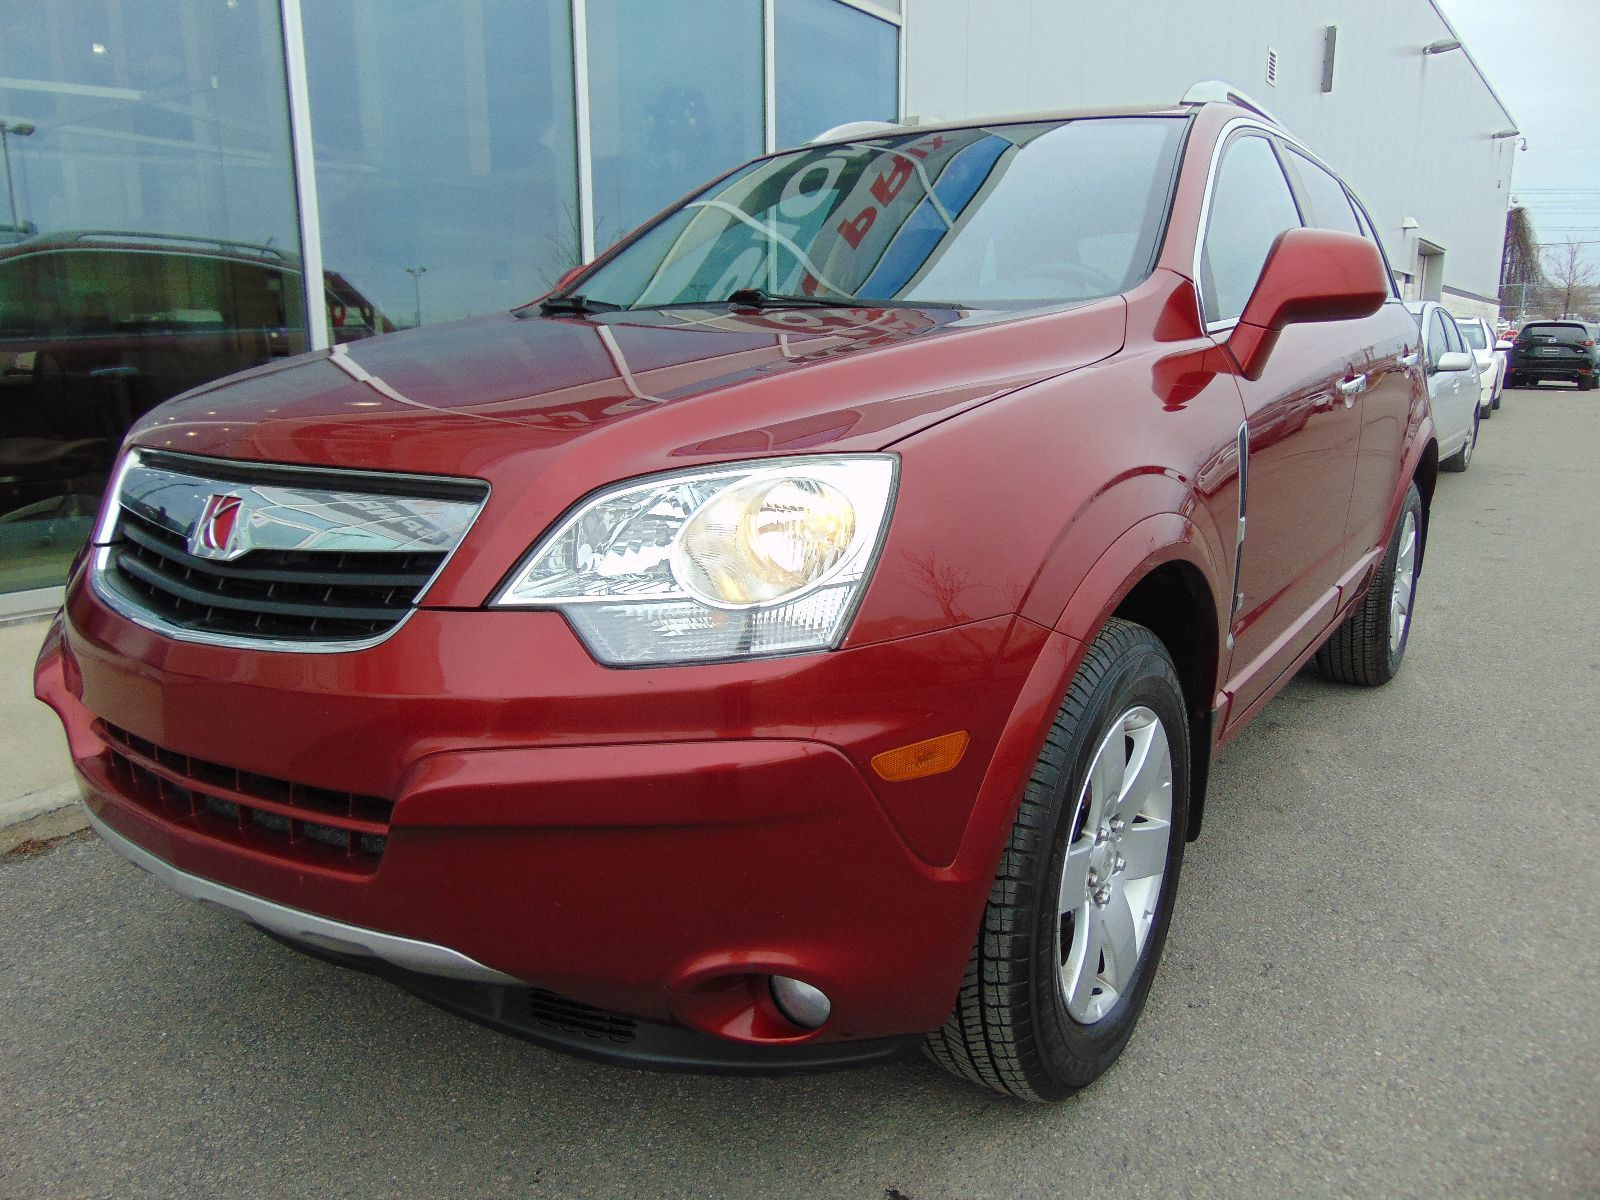 used 2008 saturn vue xr v6 fwd in montreal laval and south shore p7012. Black Bedroom Furniture Sets. Home Design Ideas